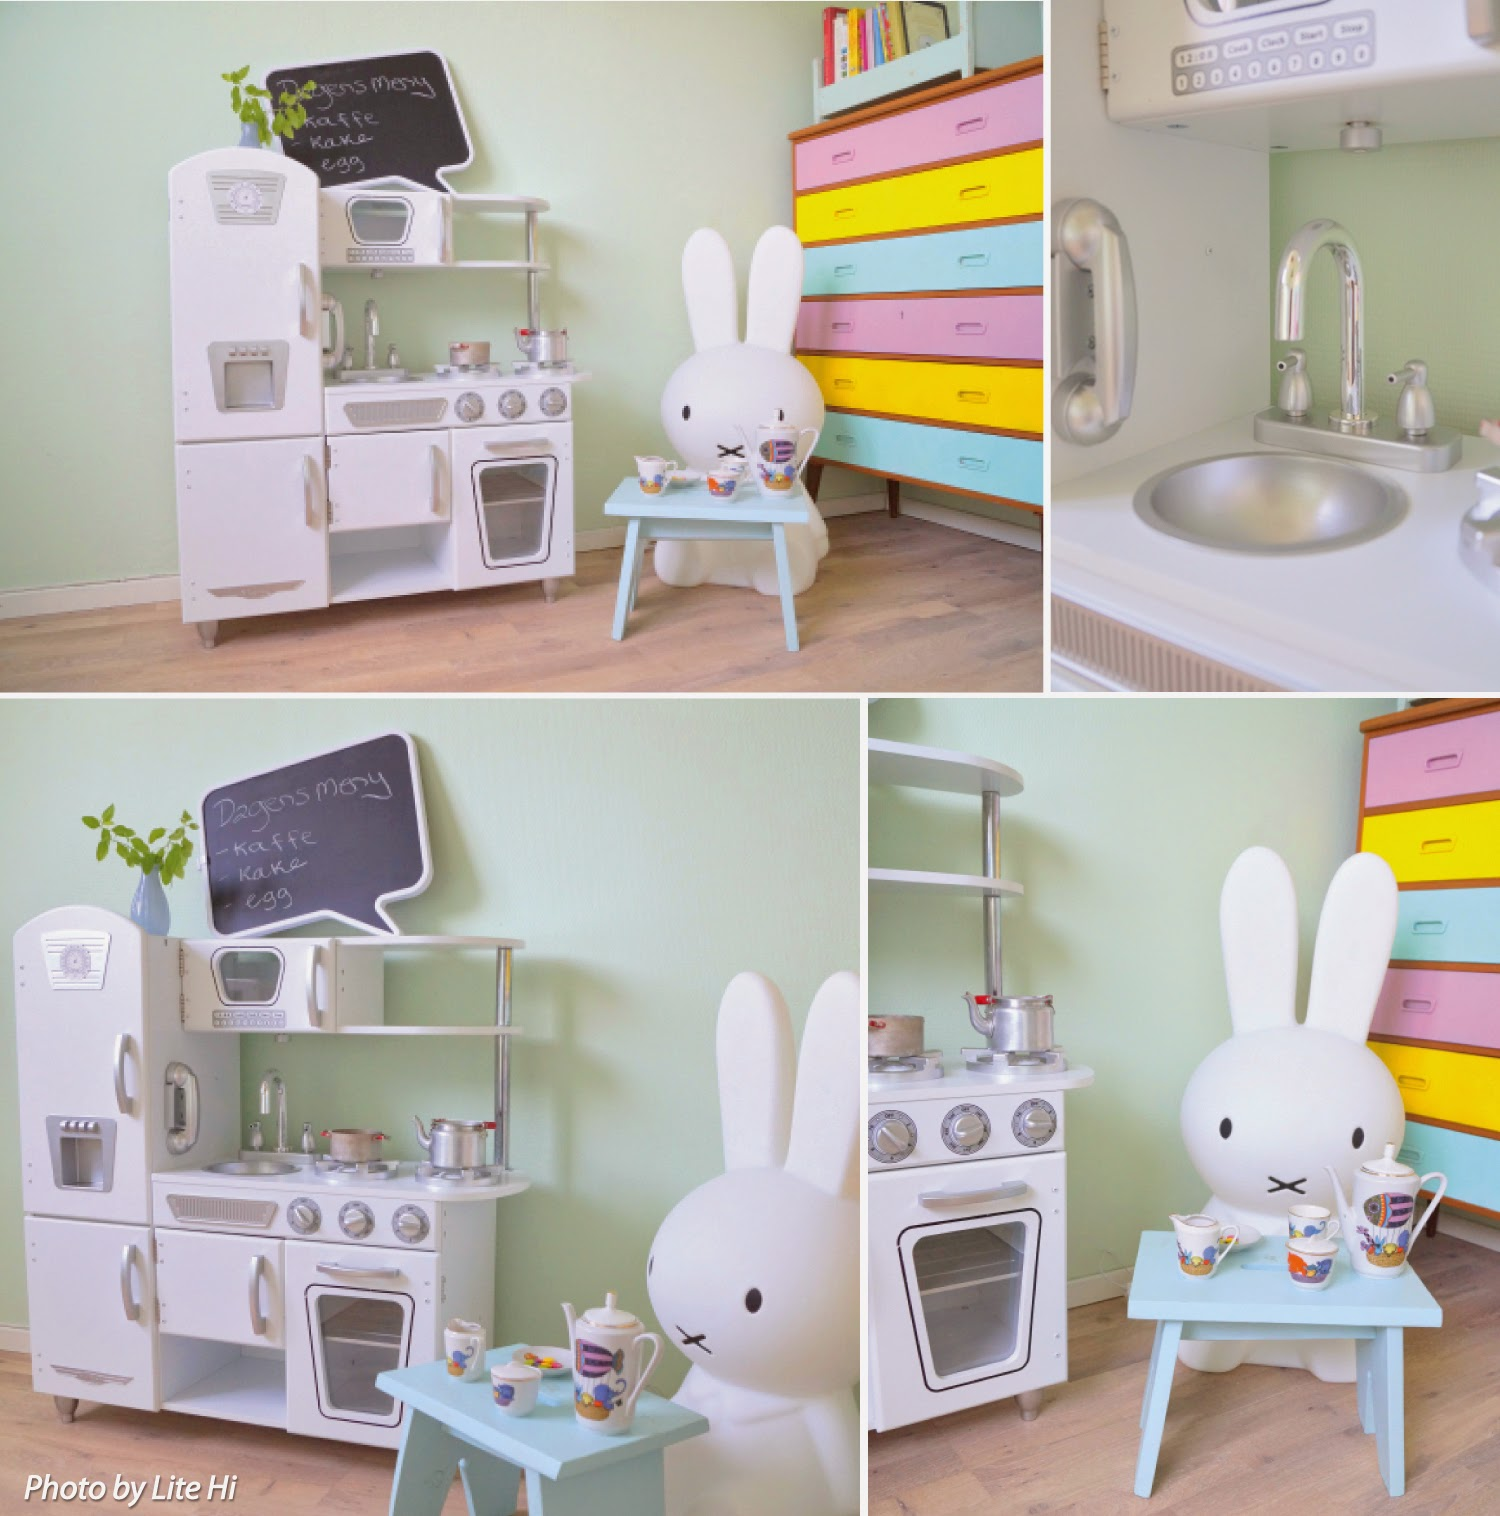 KidKraft Toys & Furniture: Lite Hi Reviews White Vintage